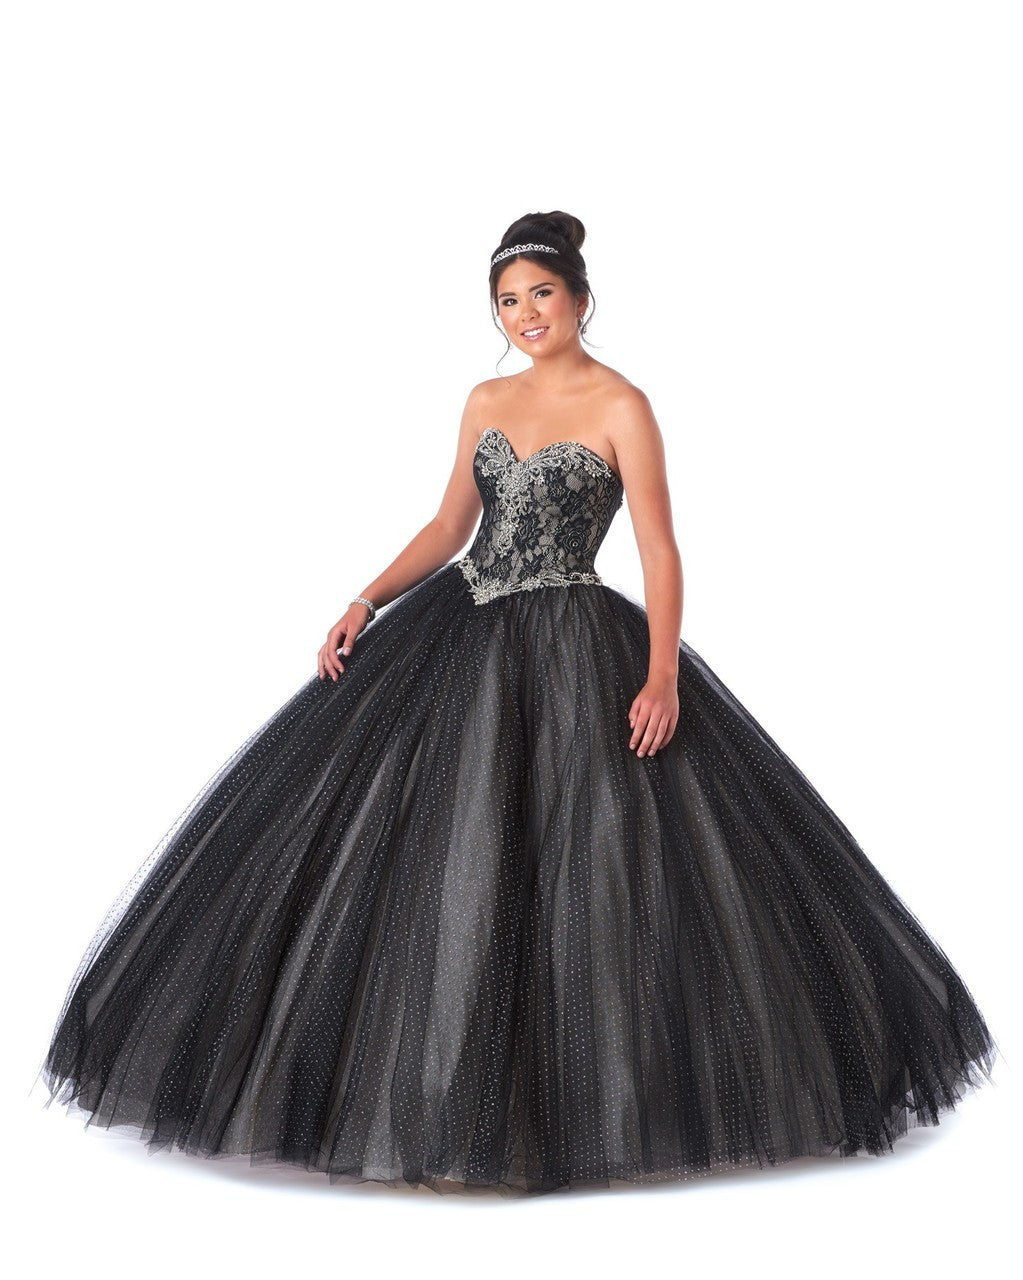 Sparkle Tulle Ball Gown With Sweetheart Neckline and Corset Back ...